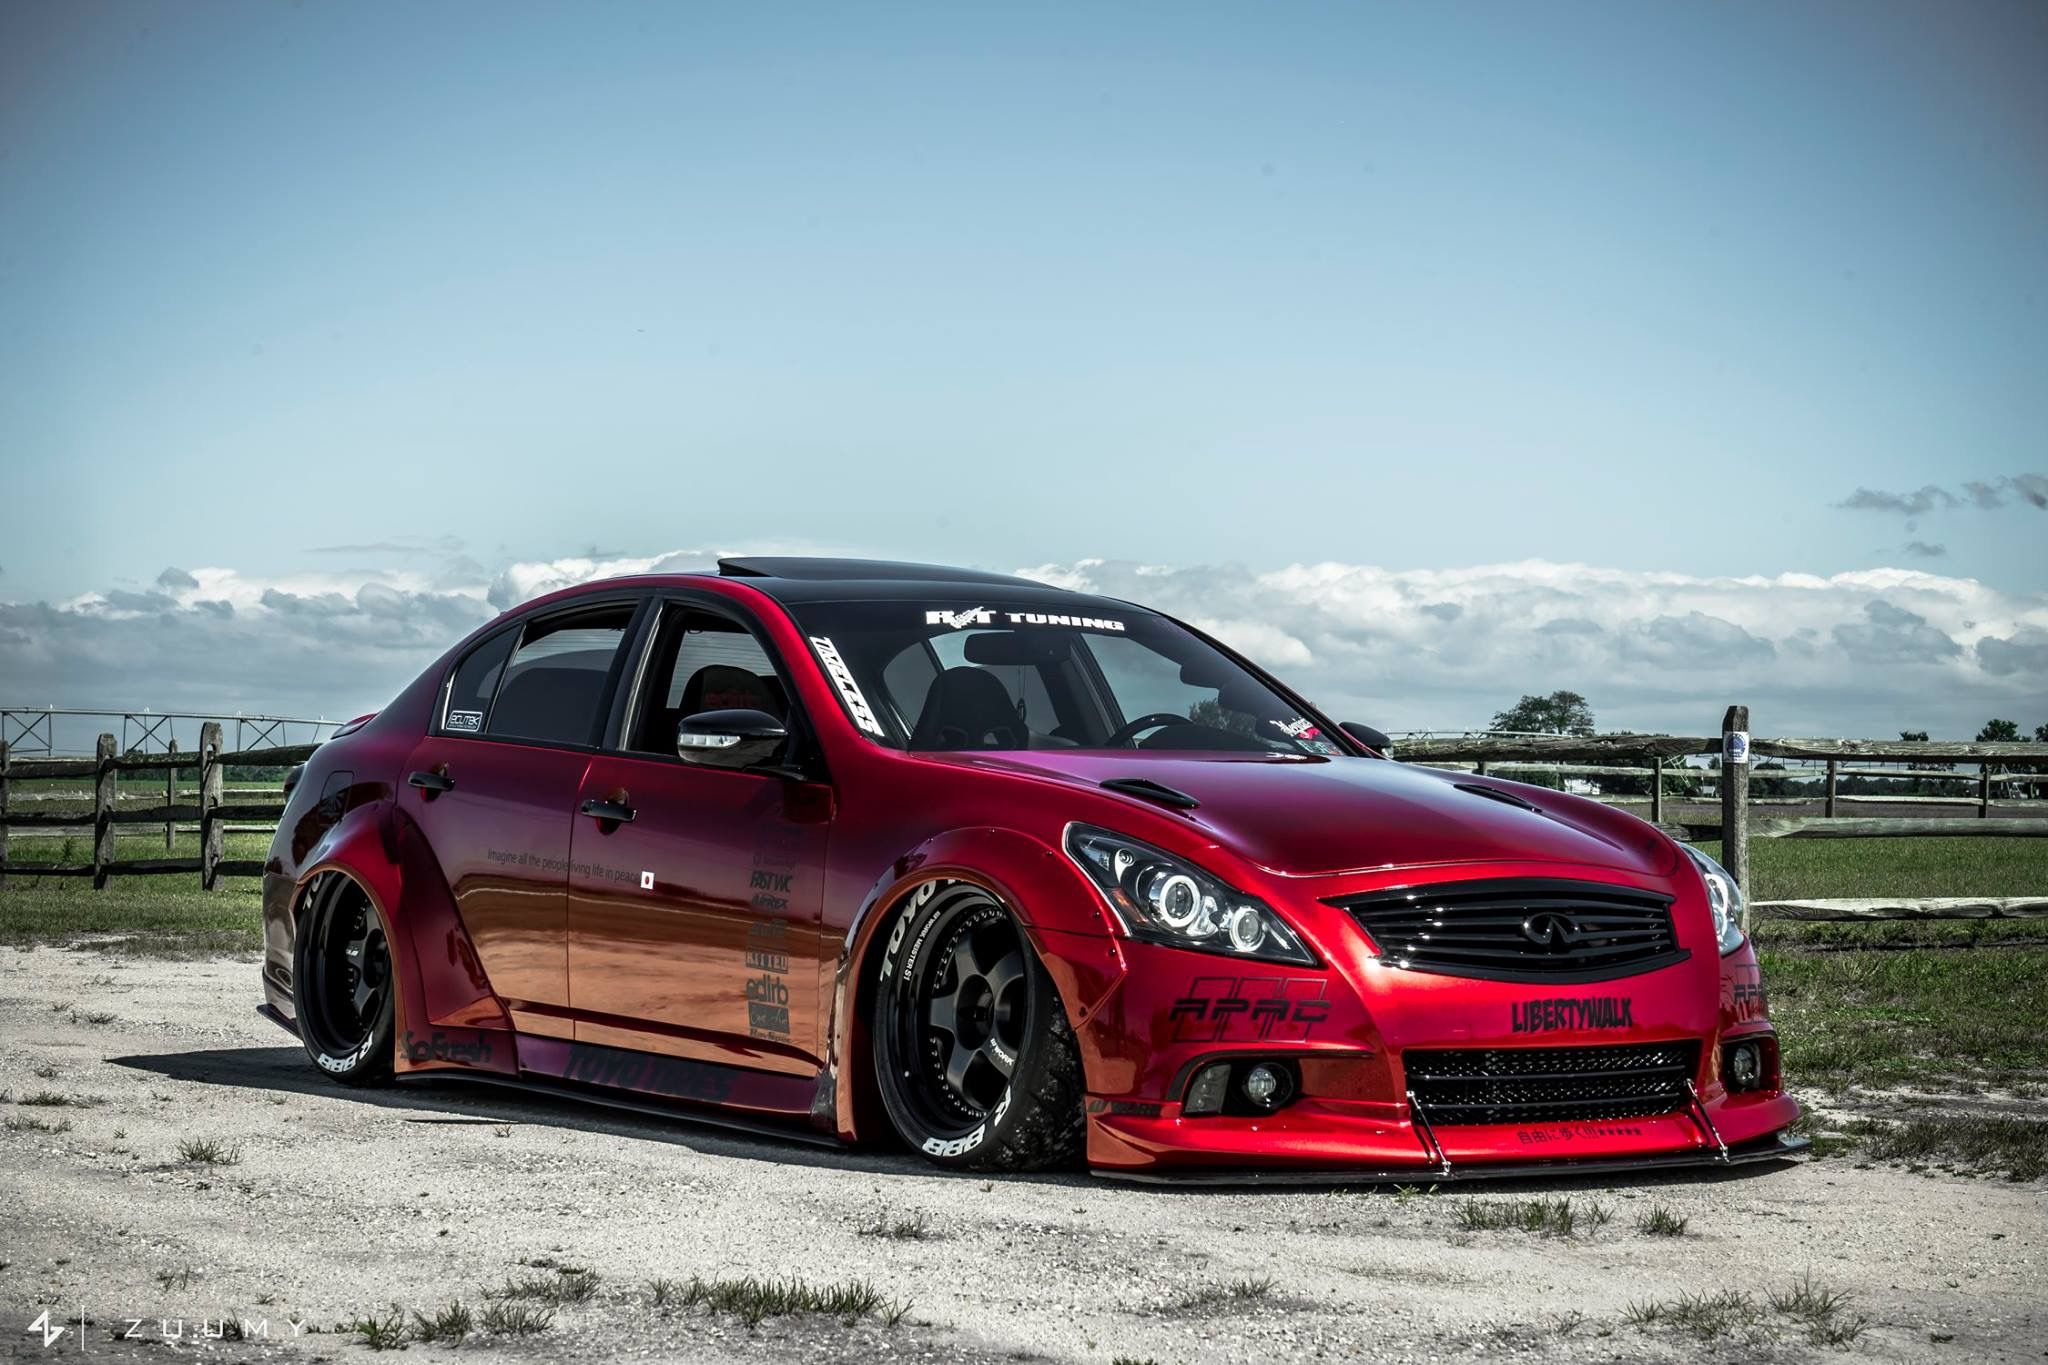 Pin By Juan M Ramirez Jr On Sweet Rides G37 Sedan